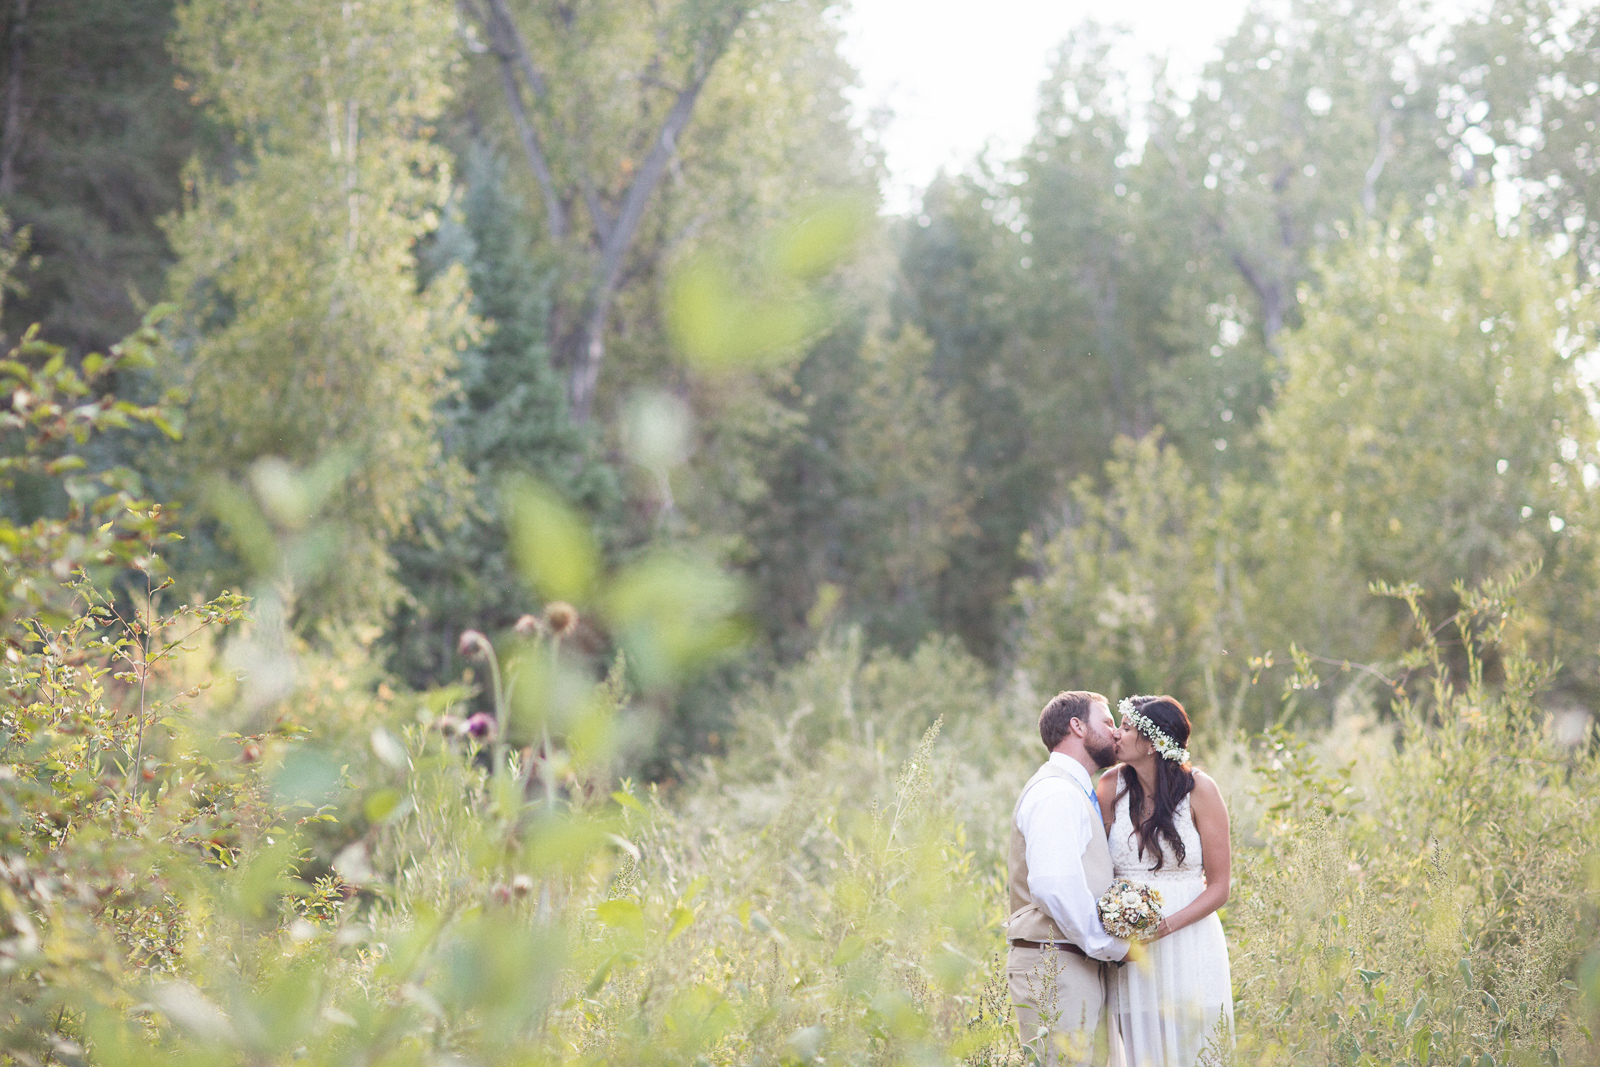 113-wedding-fun-photography-bride-groom-unique-nature-trees